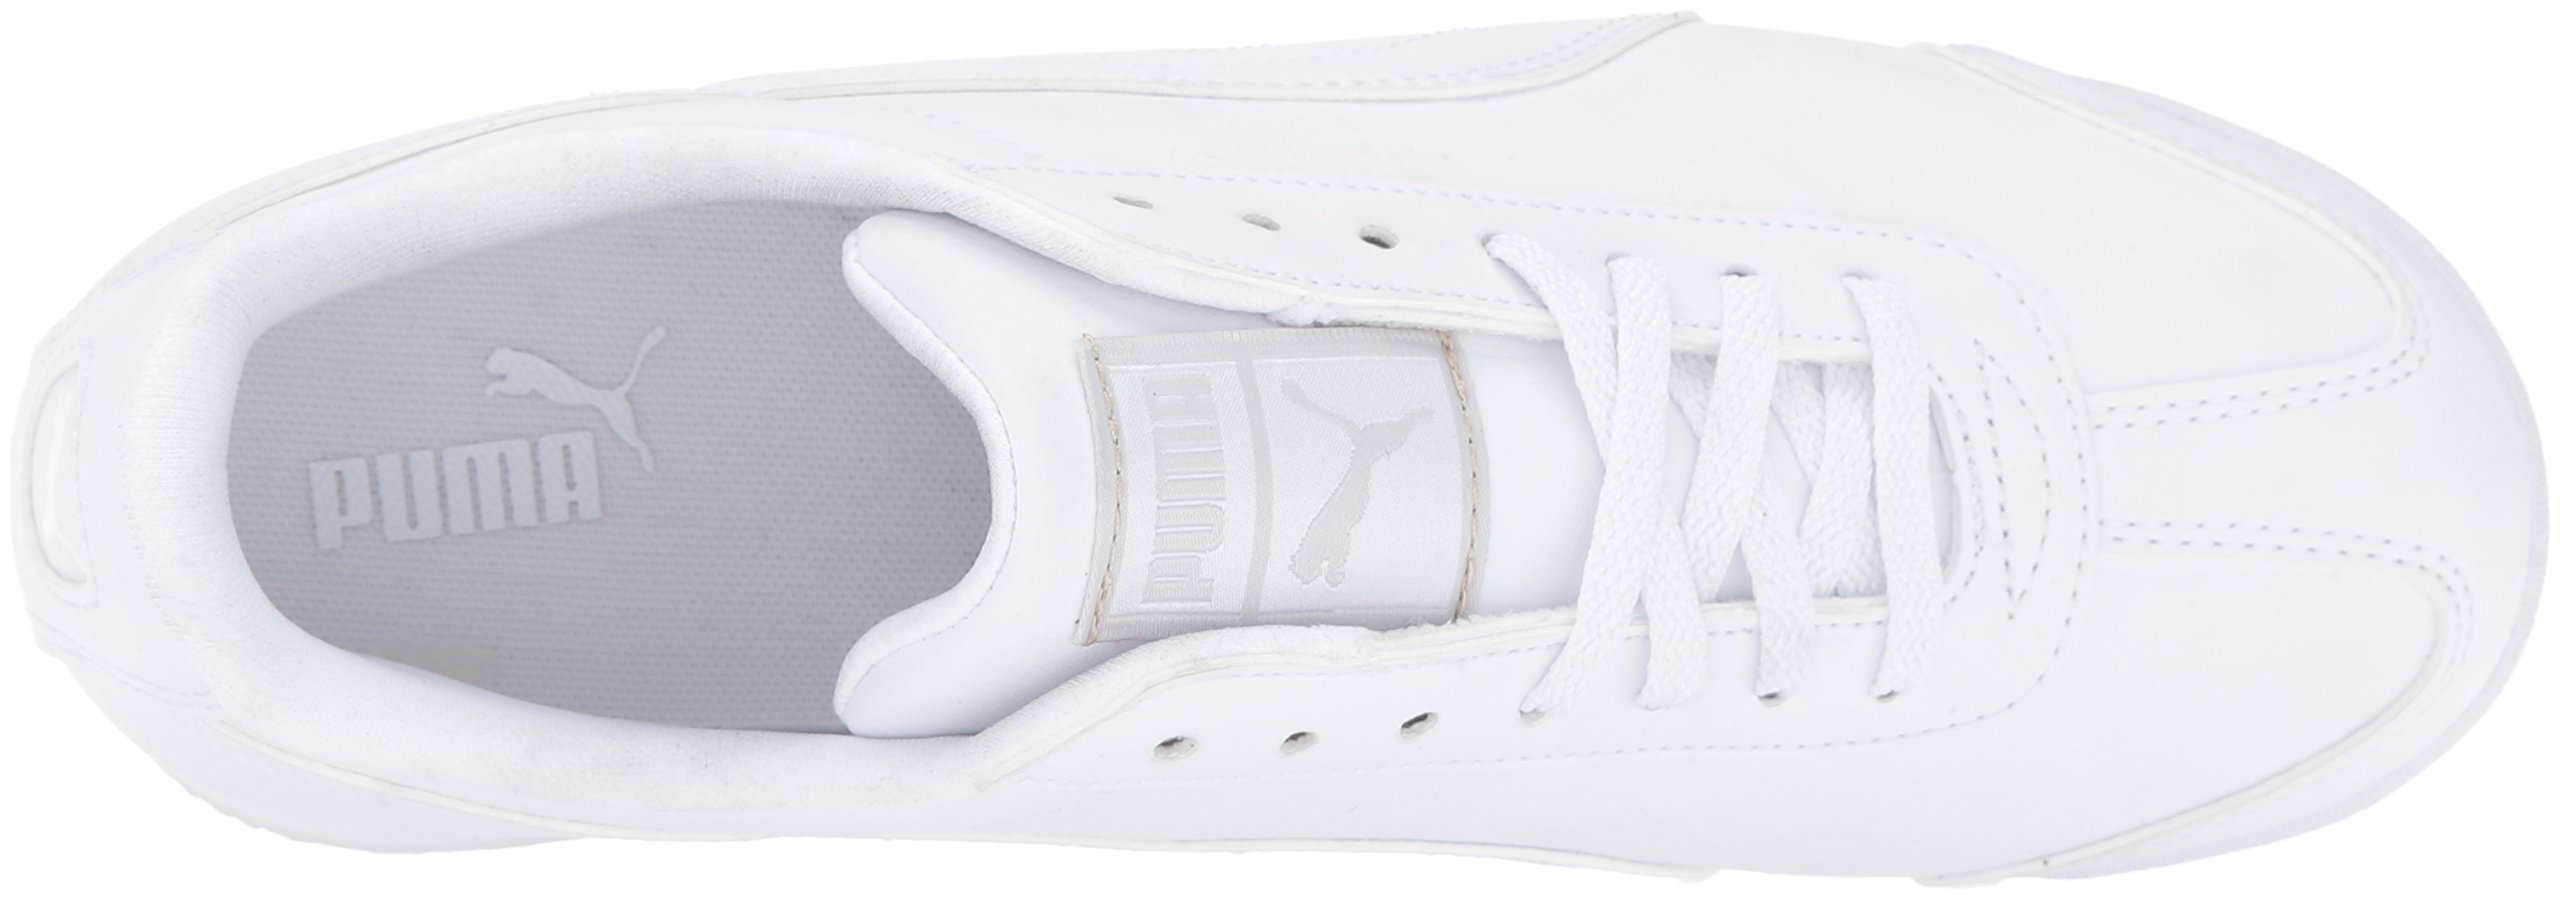 PUMA Roma Basic JR Sneaker , White/Light Gray, 3 M US Little Kid by PUMA (Image #8)